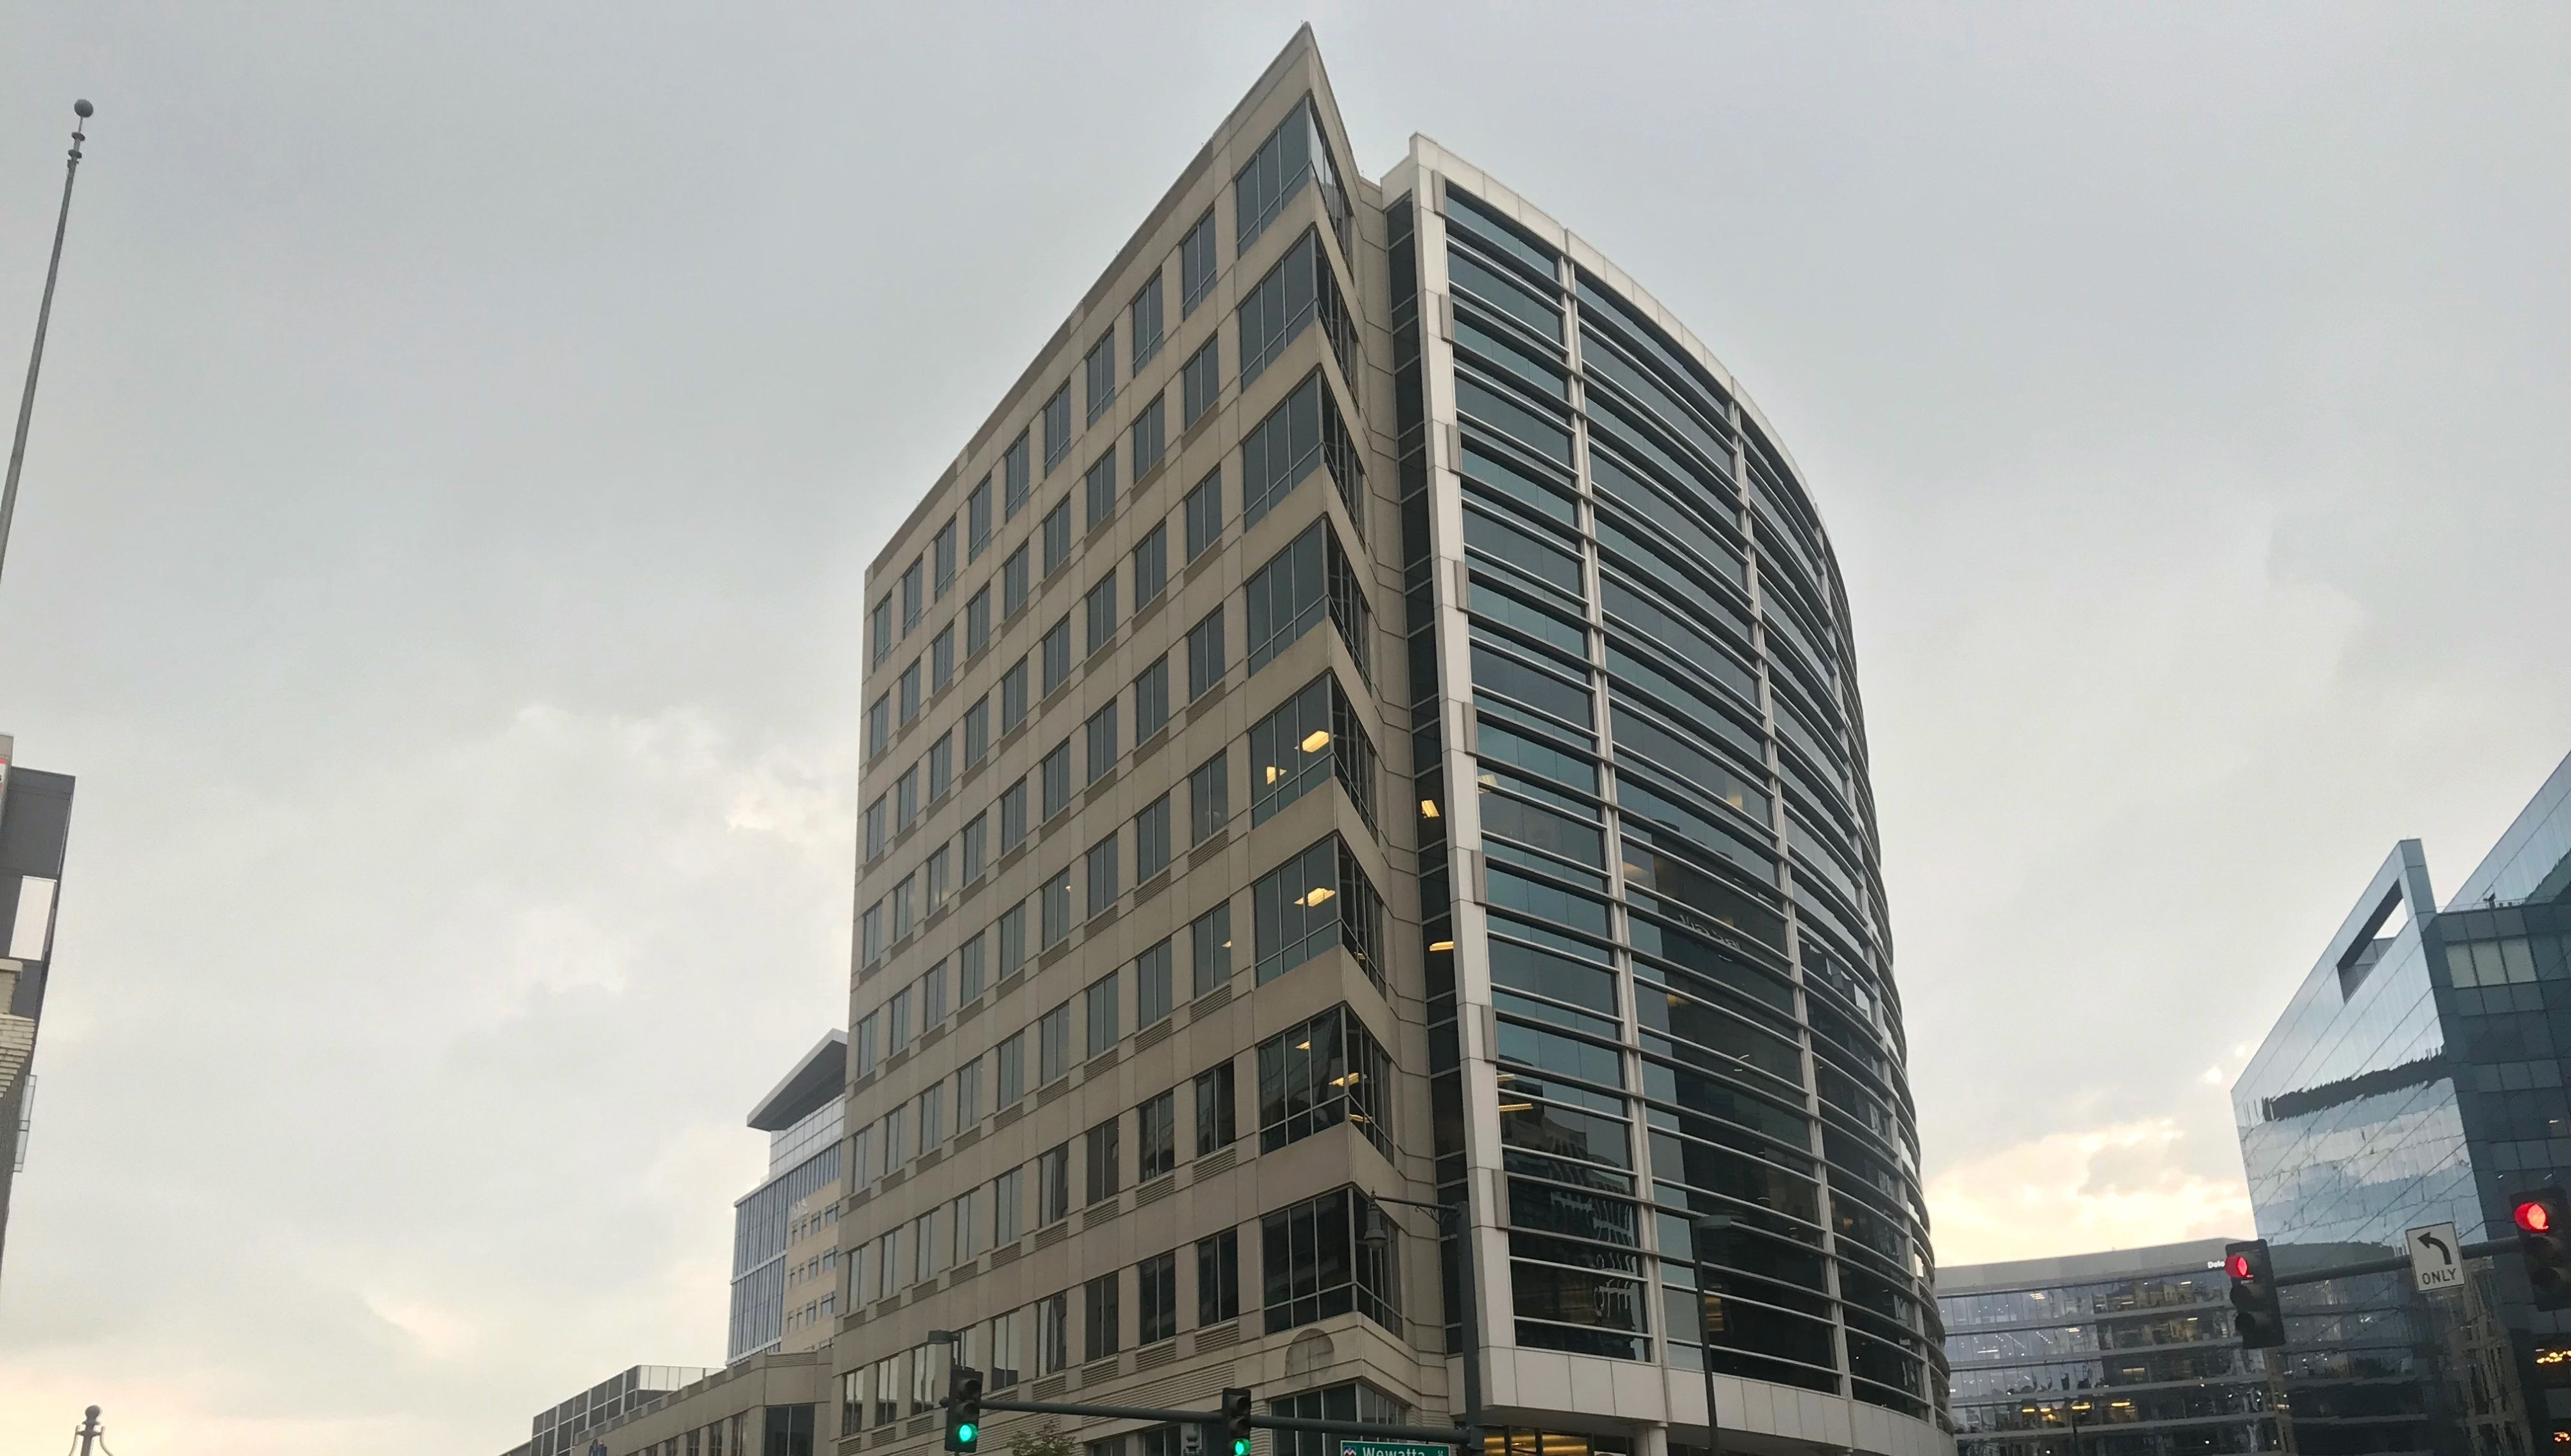 VF Corp. is interested in 1551 Wewatta St. as its possible future  headquarters. (Photo: Kate Tracy)